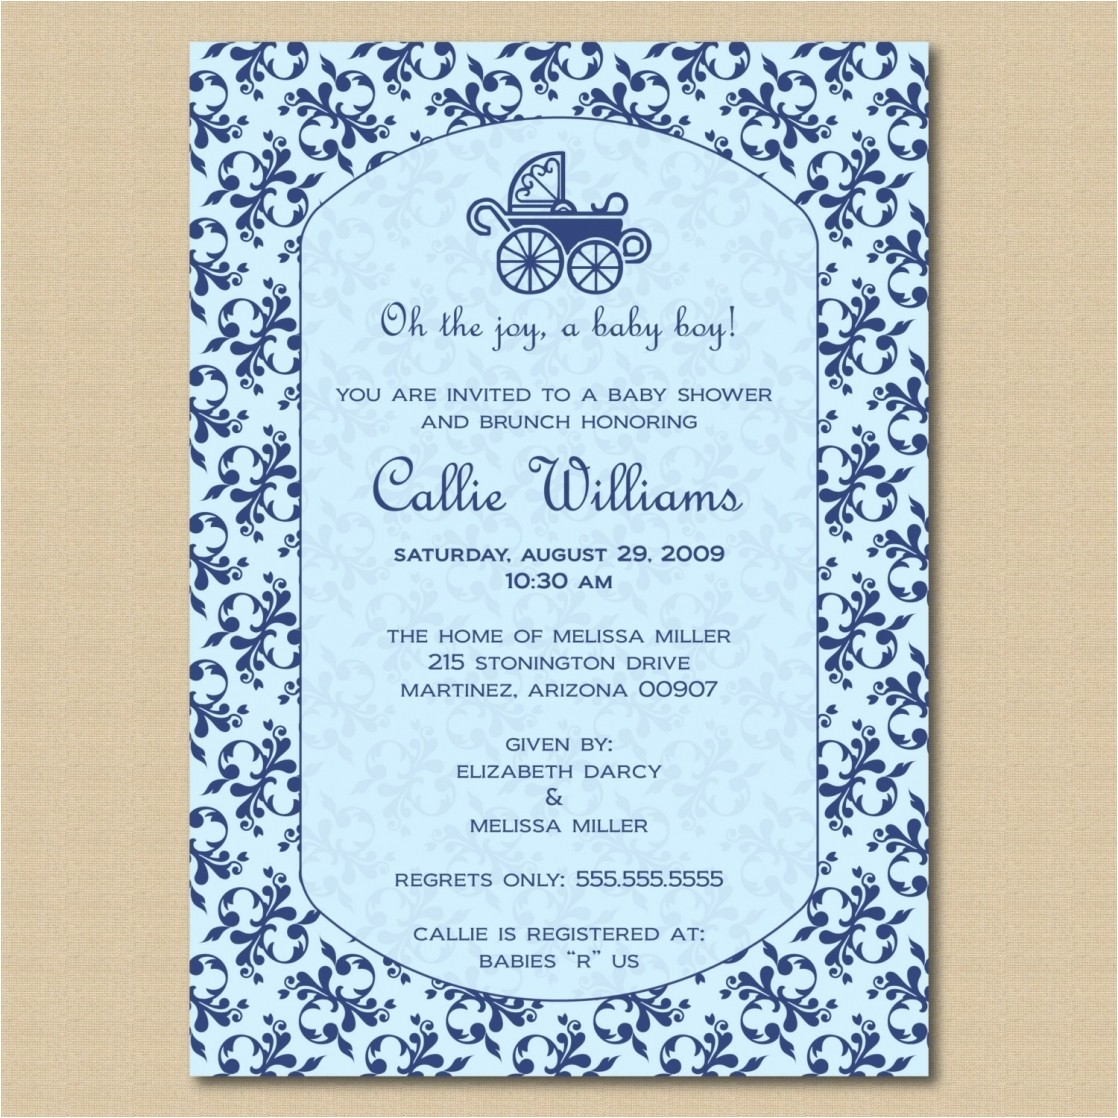 how to create baby shower invitation wording designs with home made 6 2